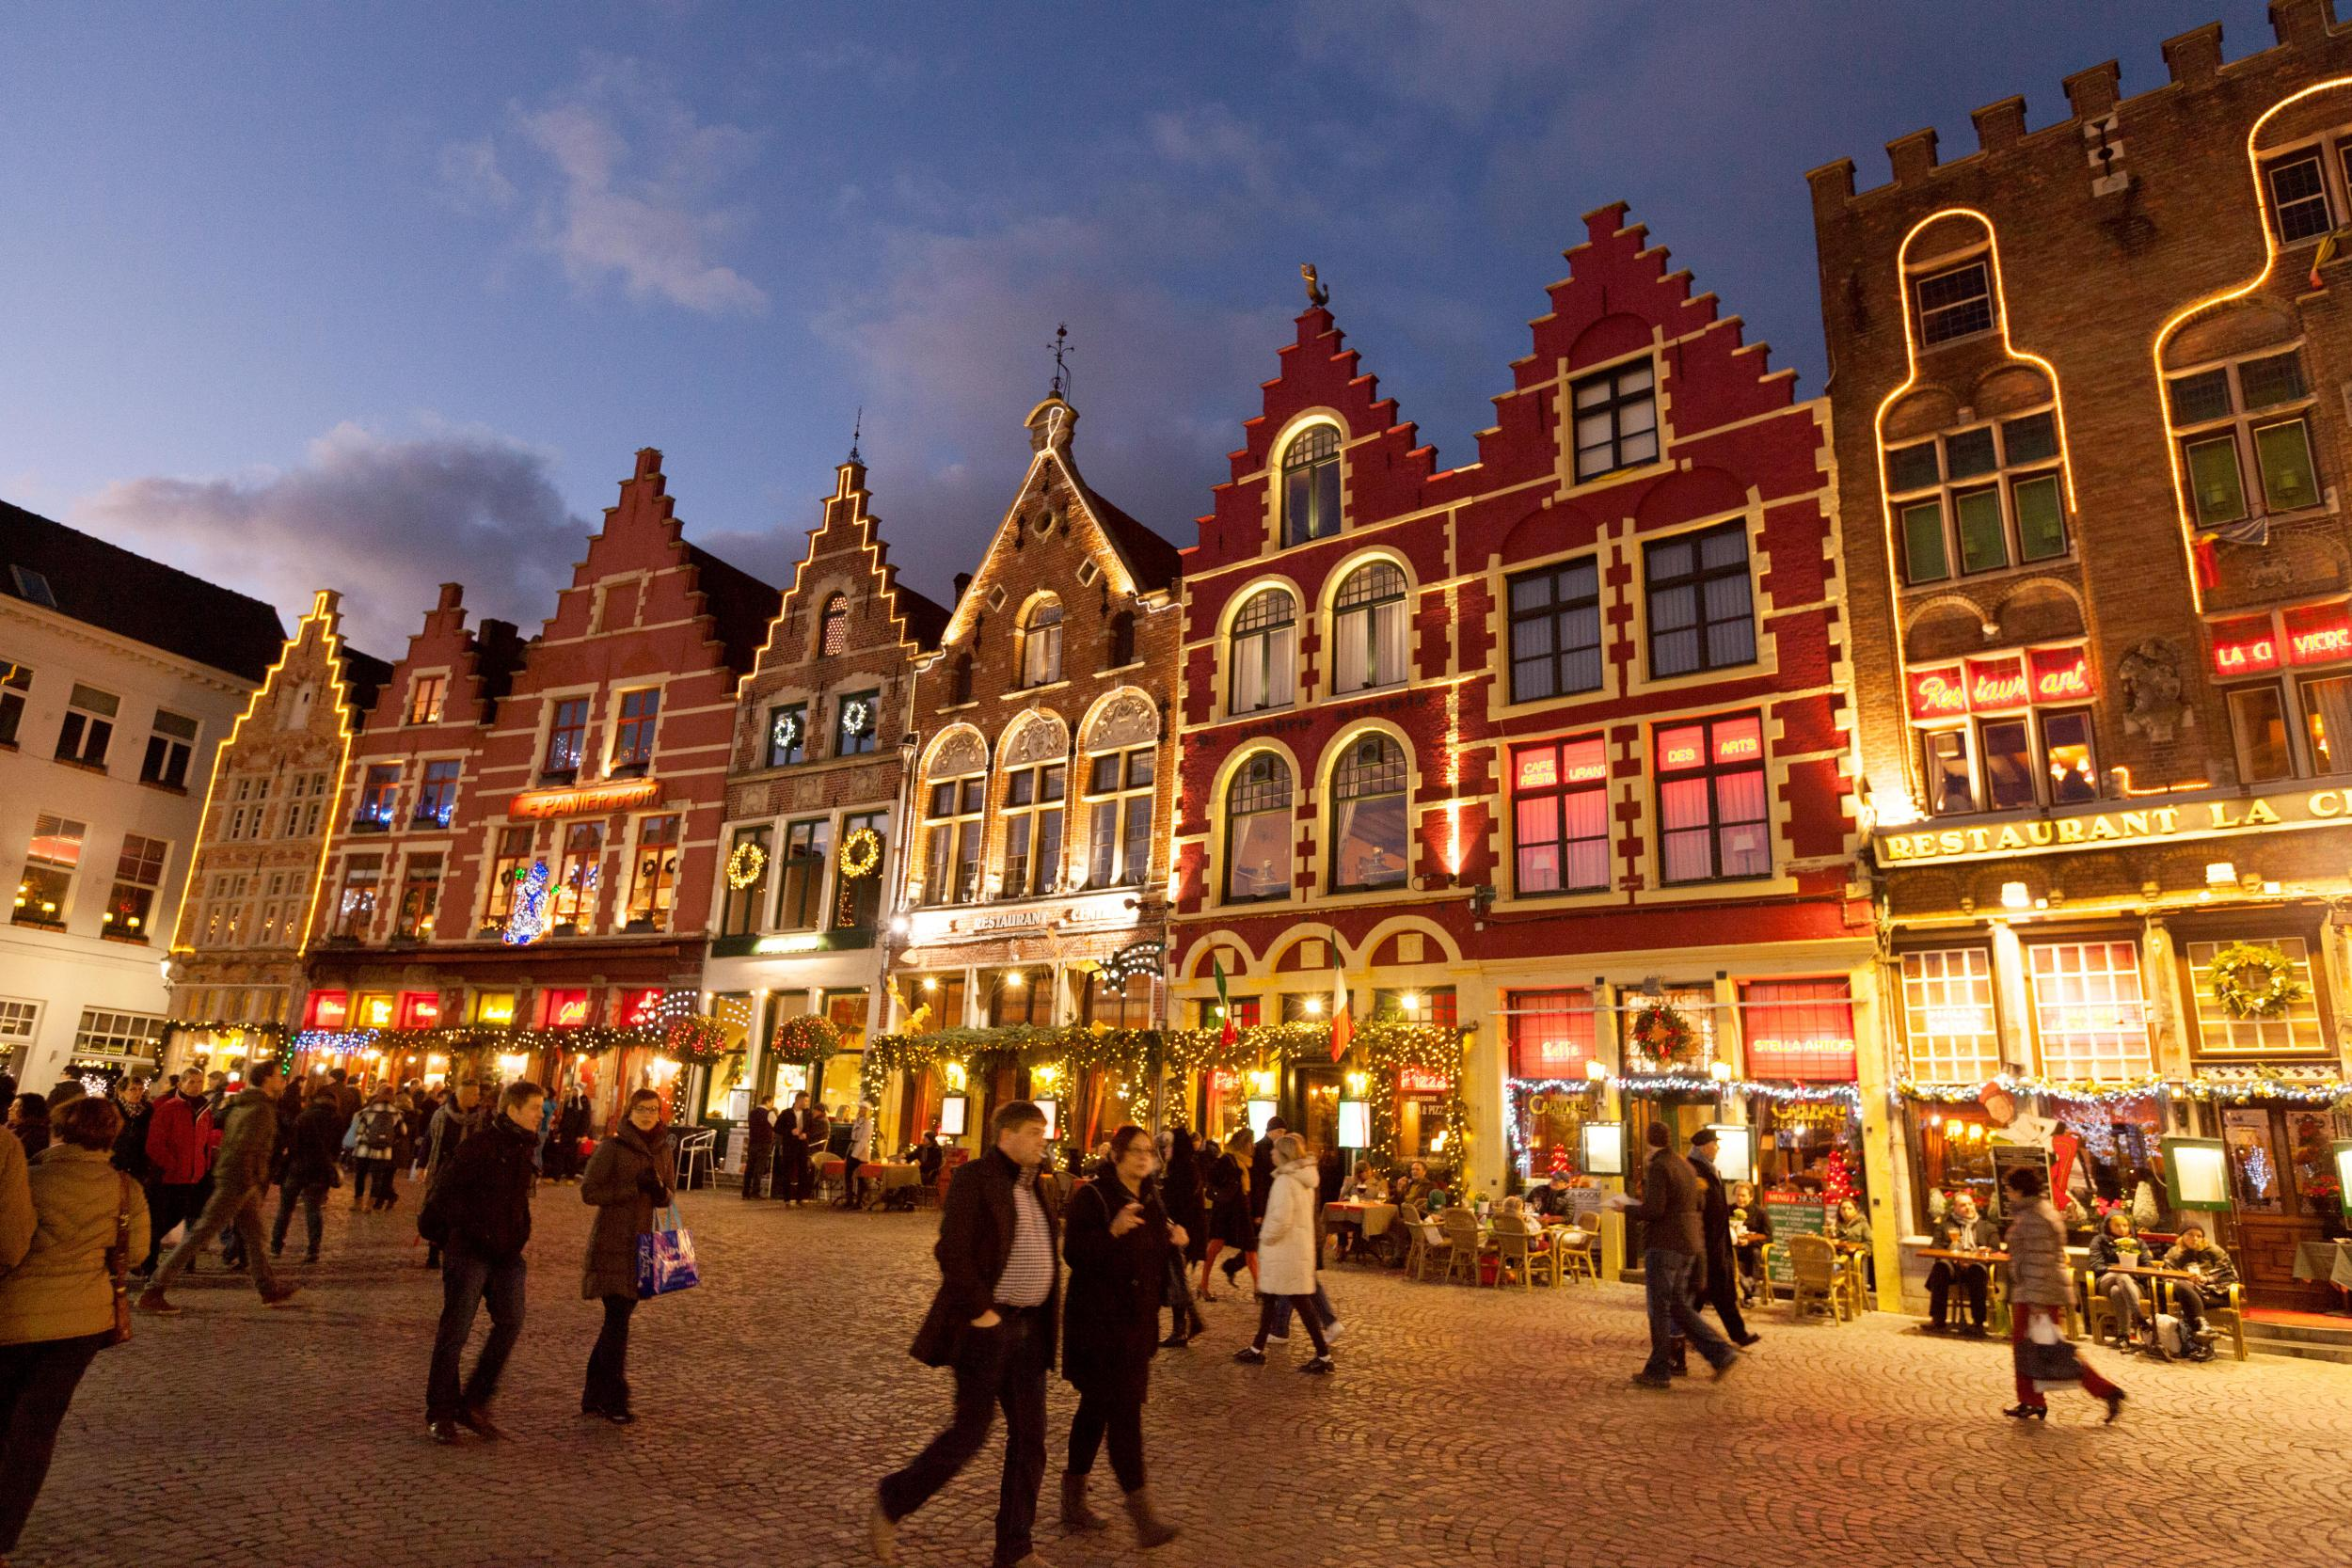 Bruges cracks down on overtourism to avoid becoming 'complete Disneyland'